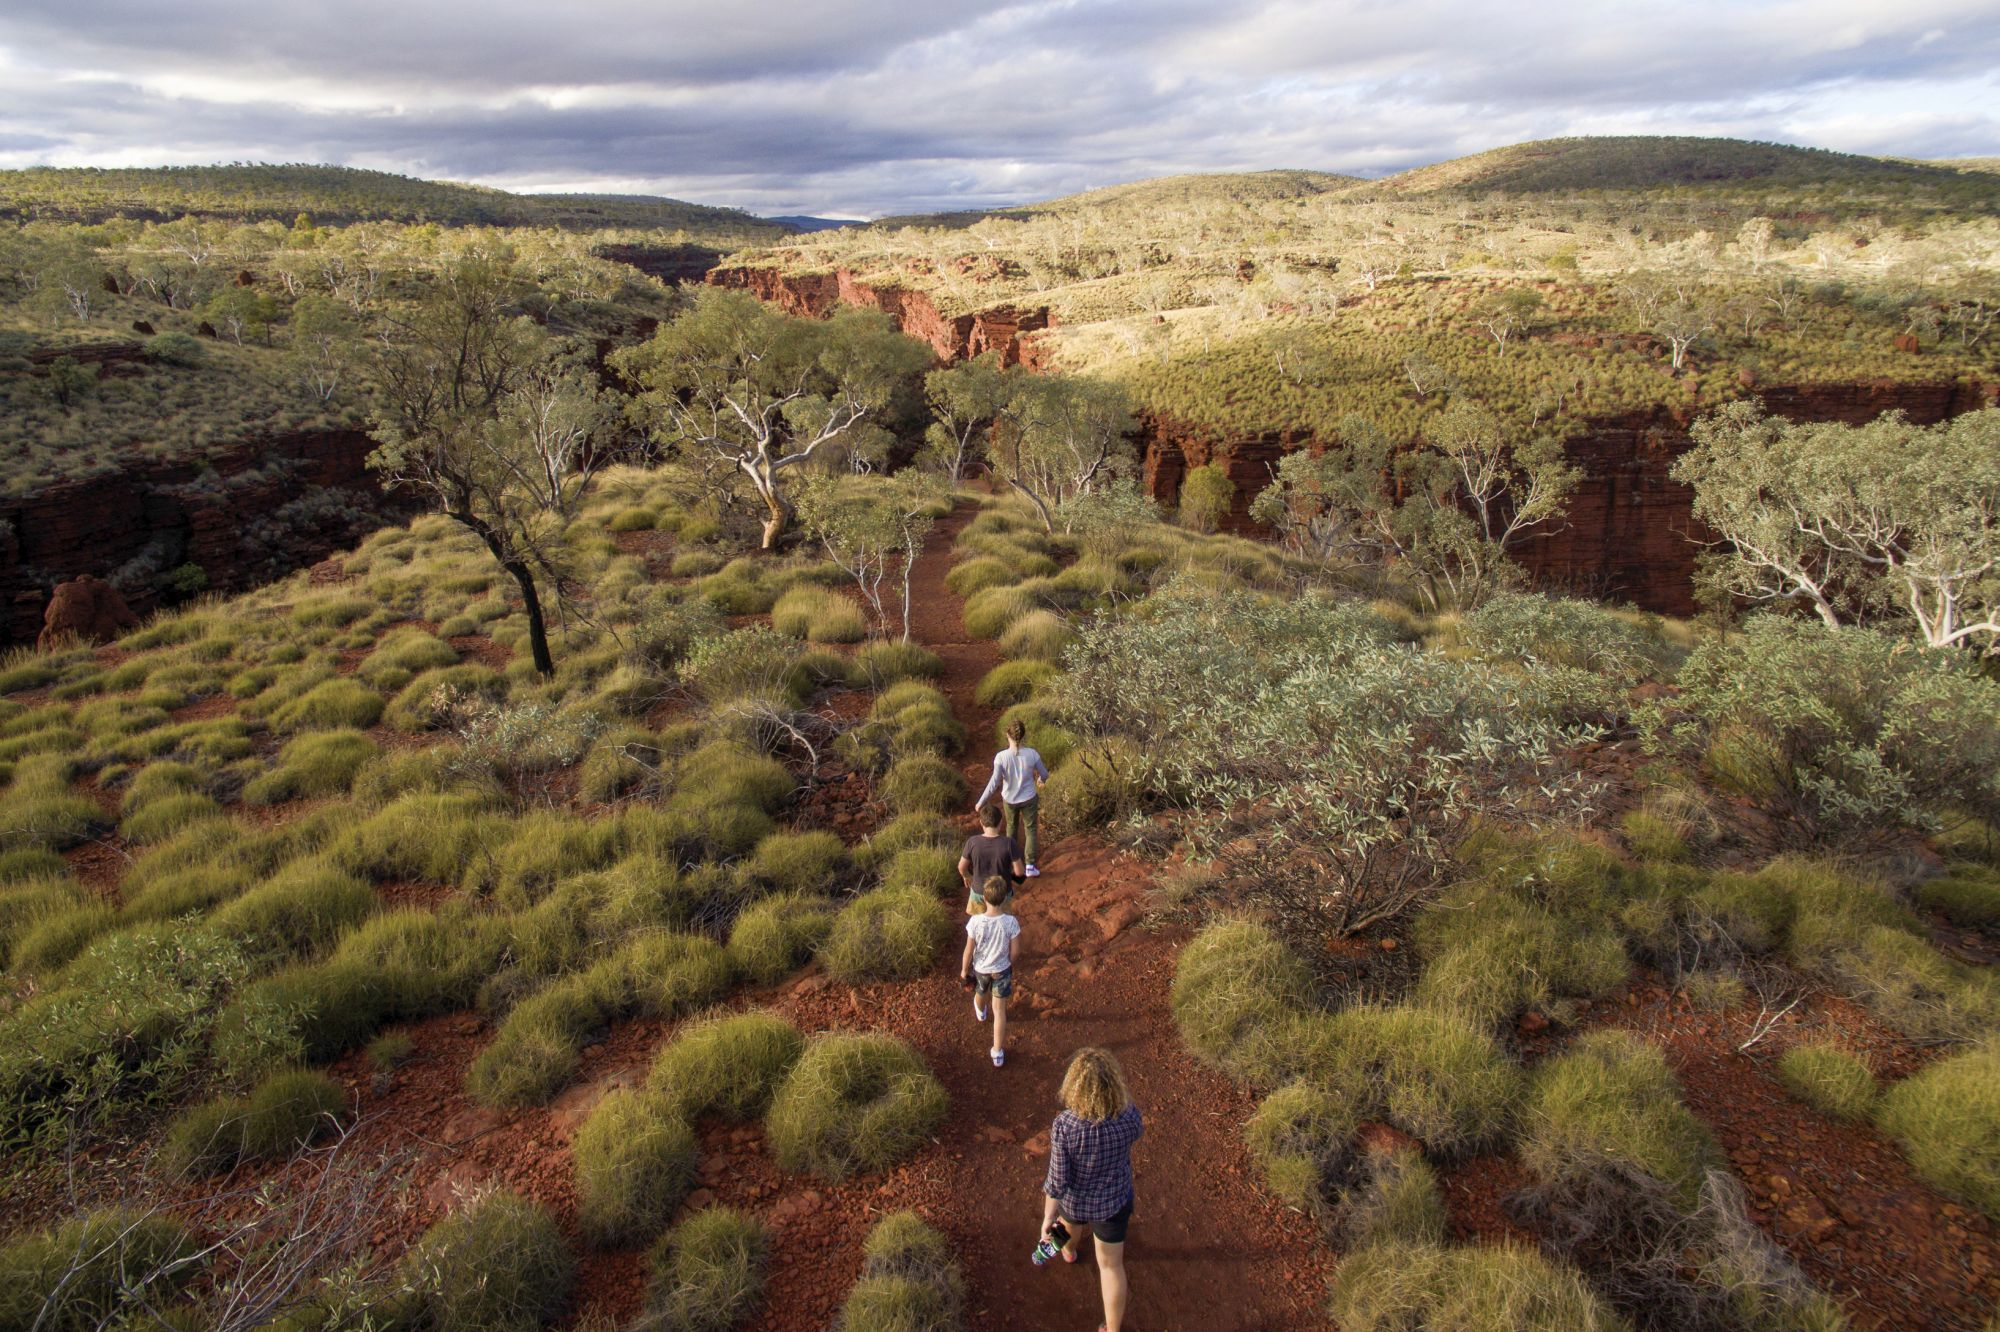 6 DAY KARIJINI TOURS FROM BROOME   This tour is available as small mixed group or private tour. Explore Karijini National Park & highlights of the Pilbara.